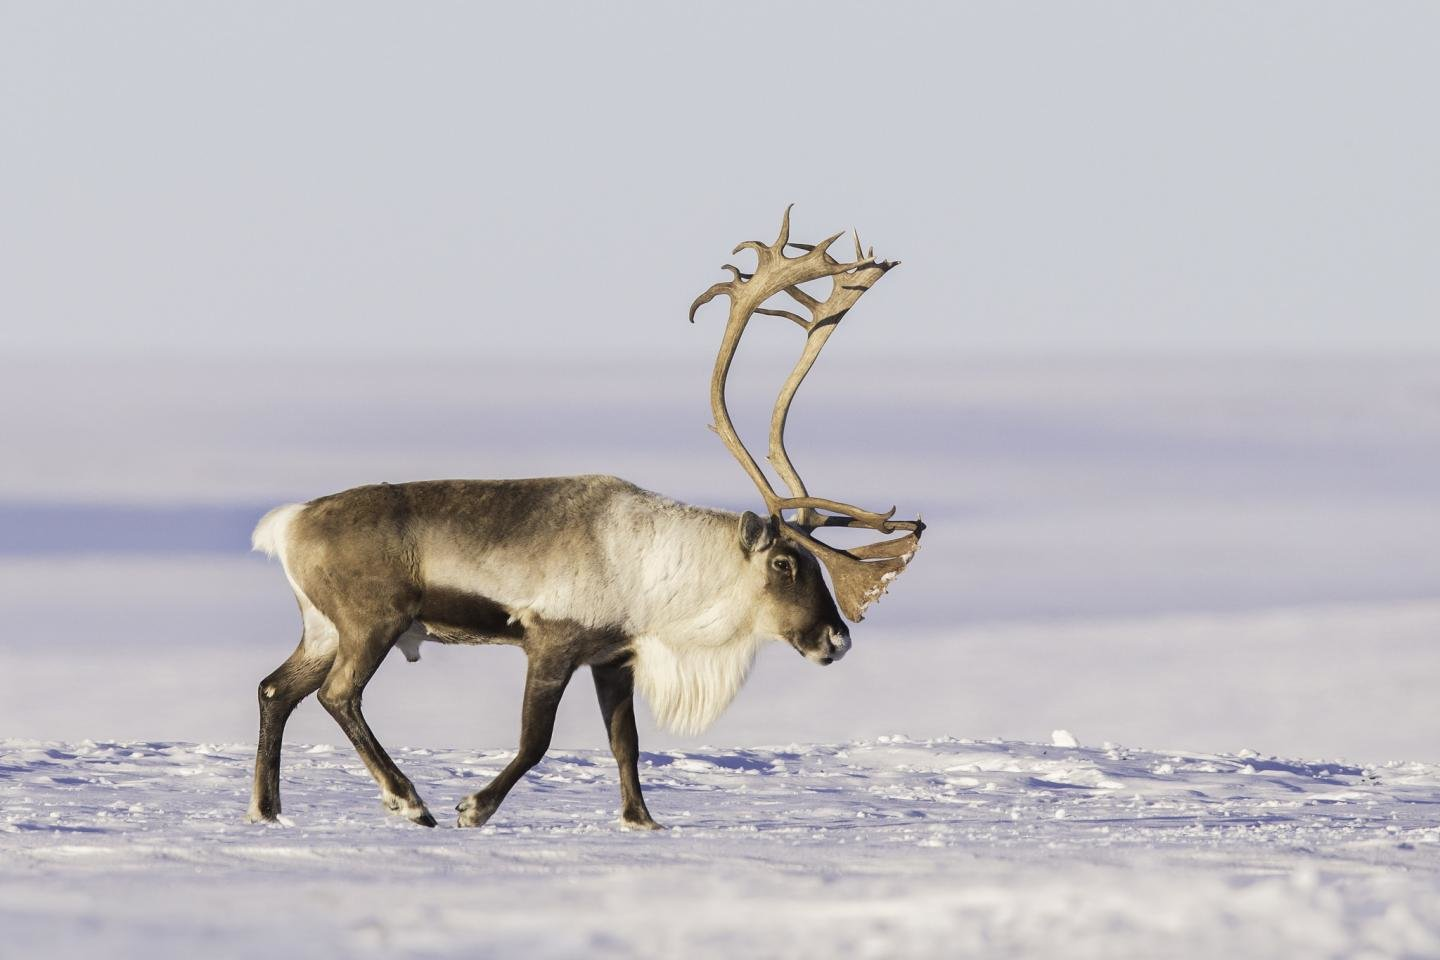 Awesome Reindeer free wallpaper ID:256635 for hd 1440x960 desktop